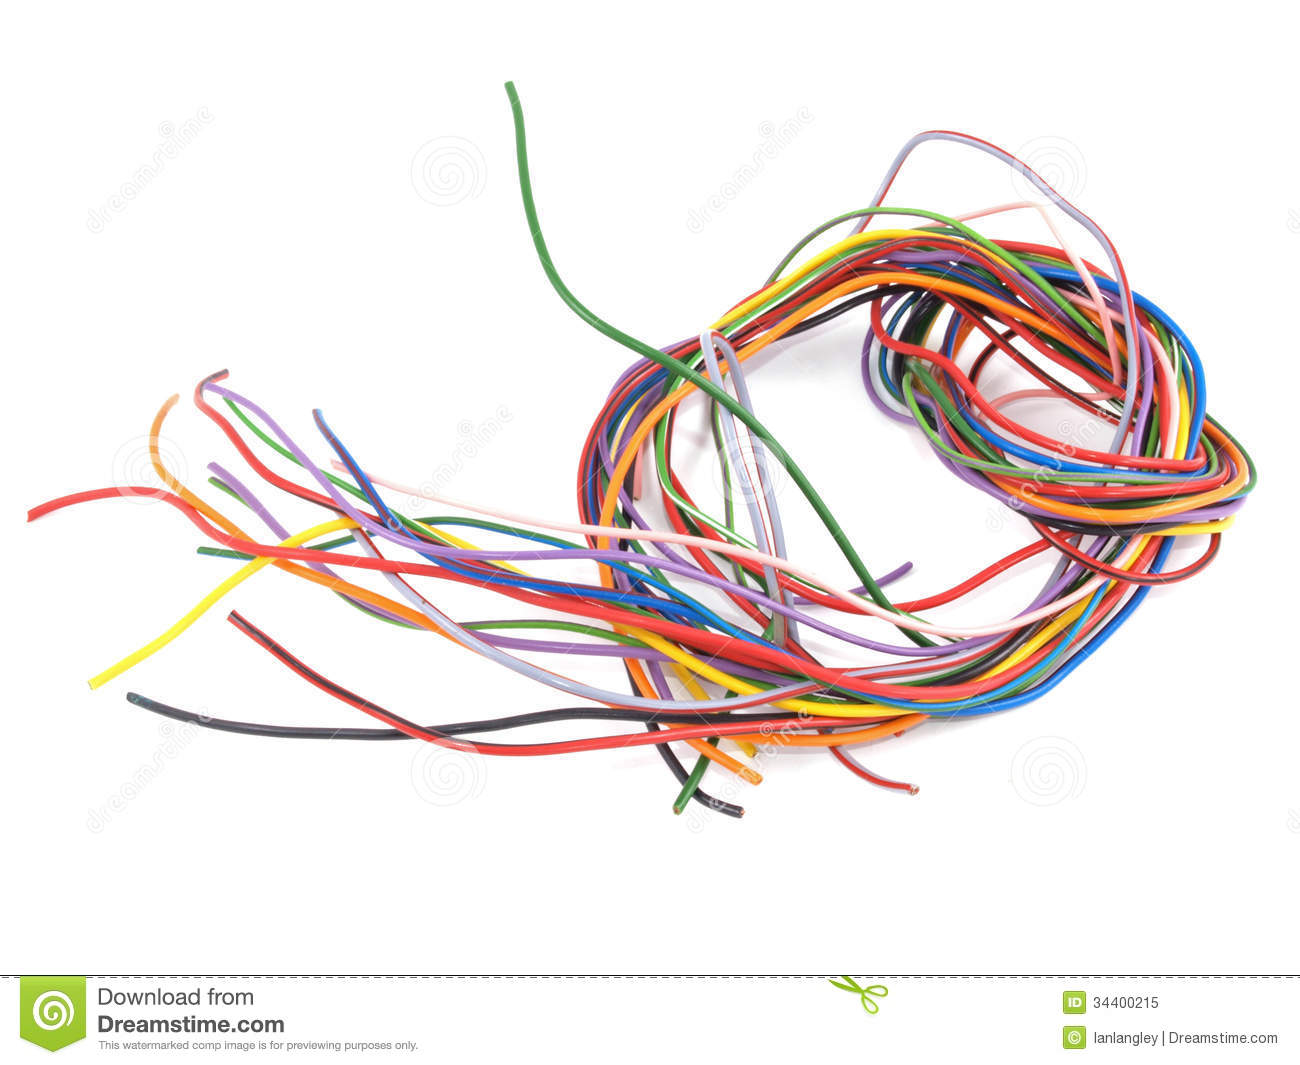 close up of multicoloured electrical wire royalty free stock photo image 34400215. Black Bedroom Furniture Sets. Home Design Ideas